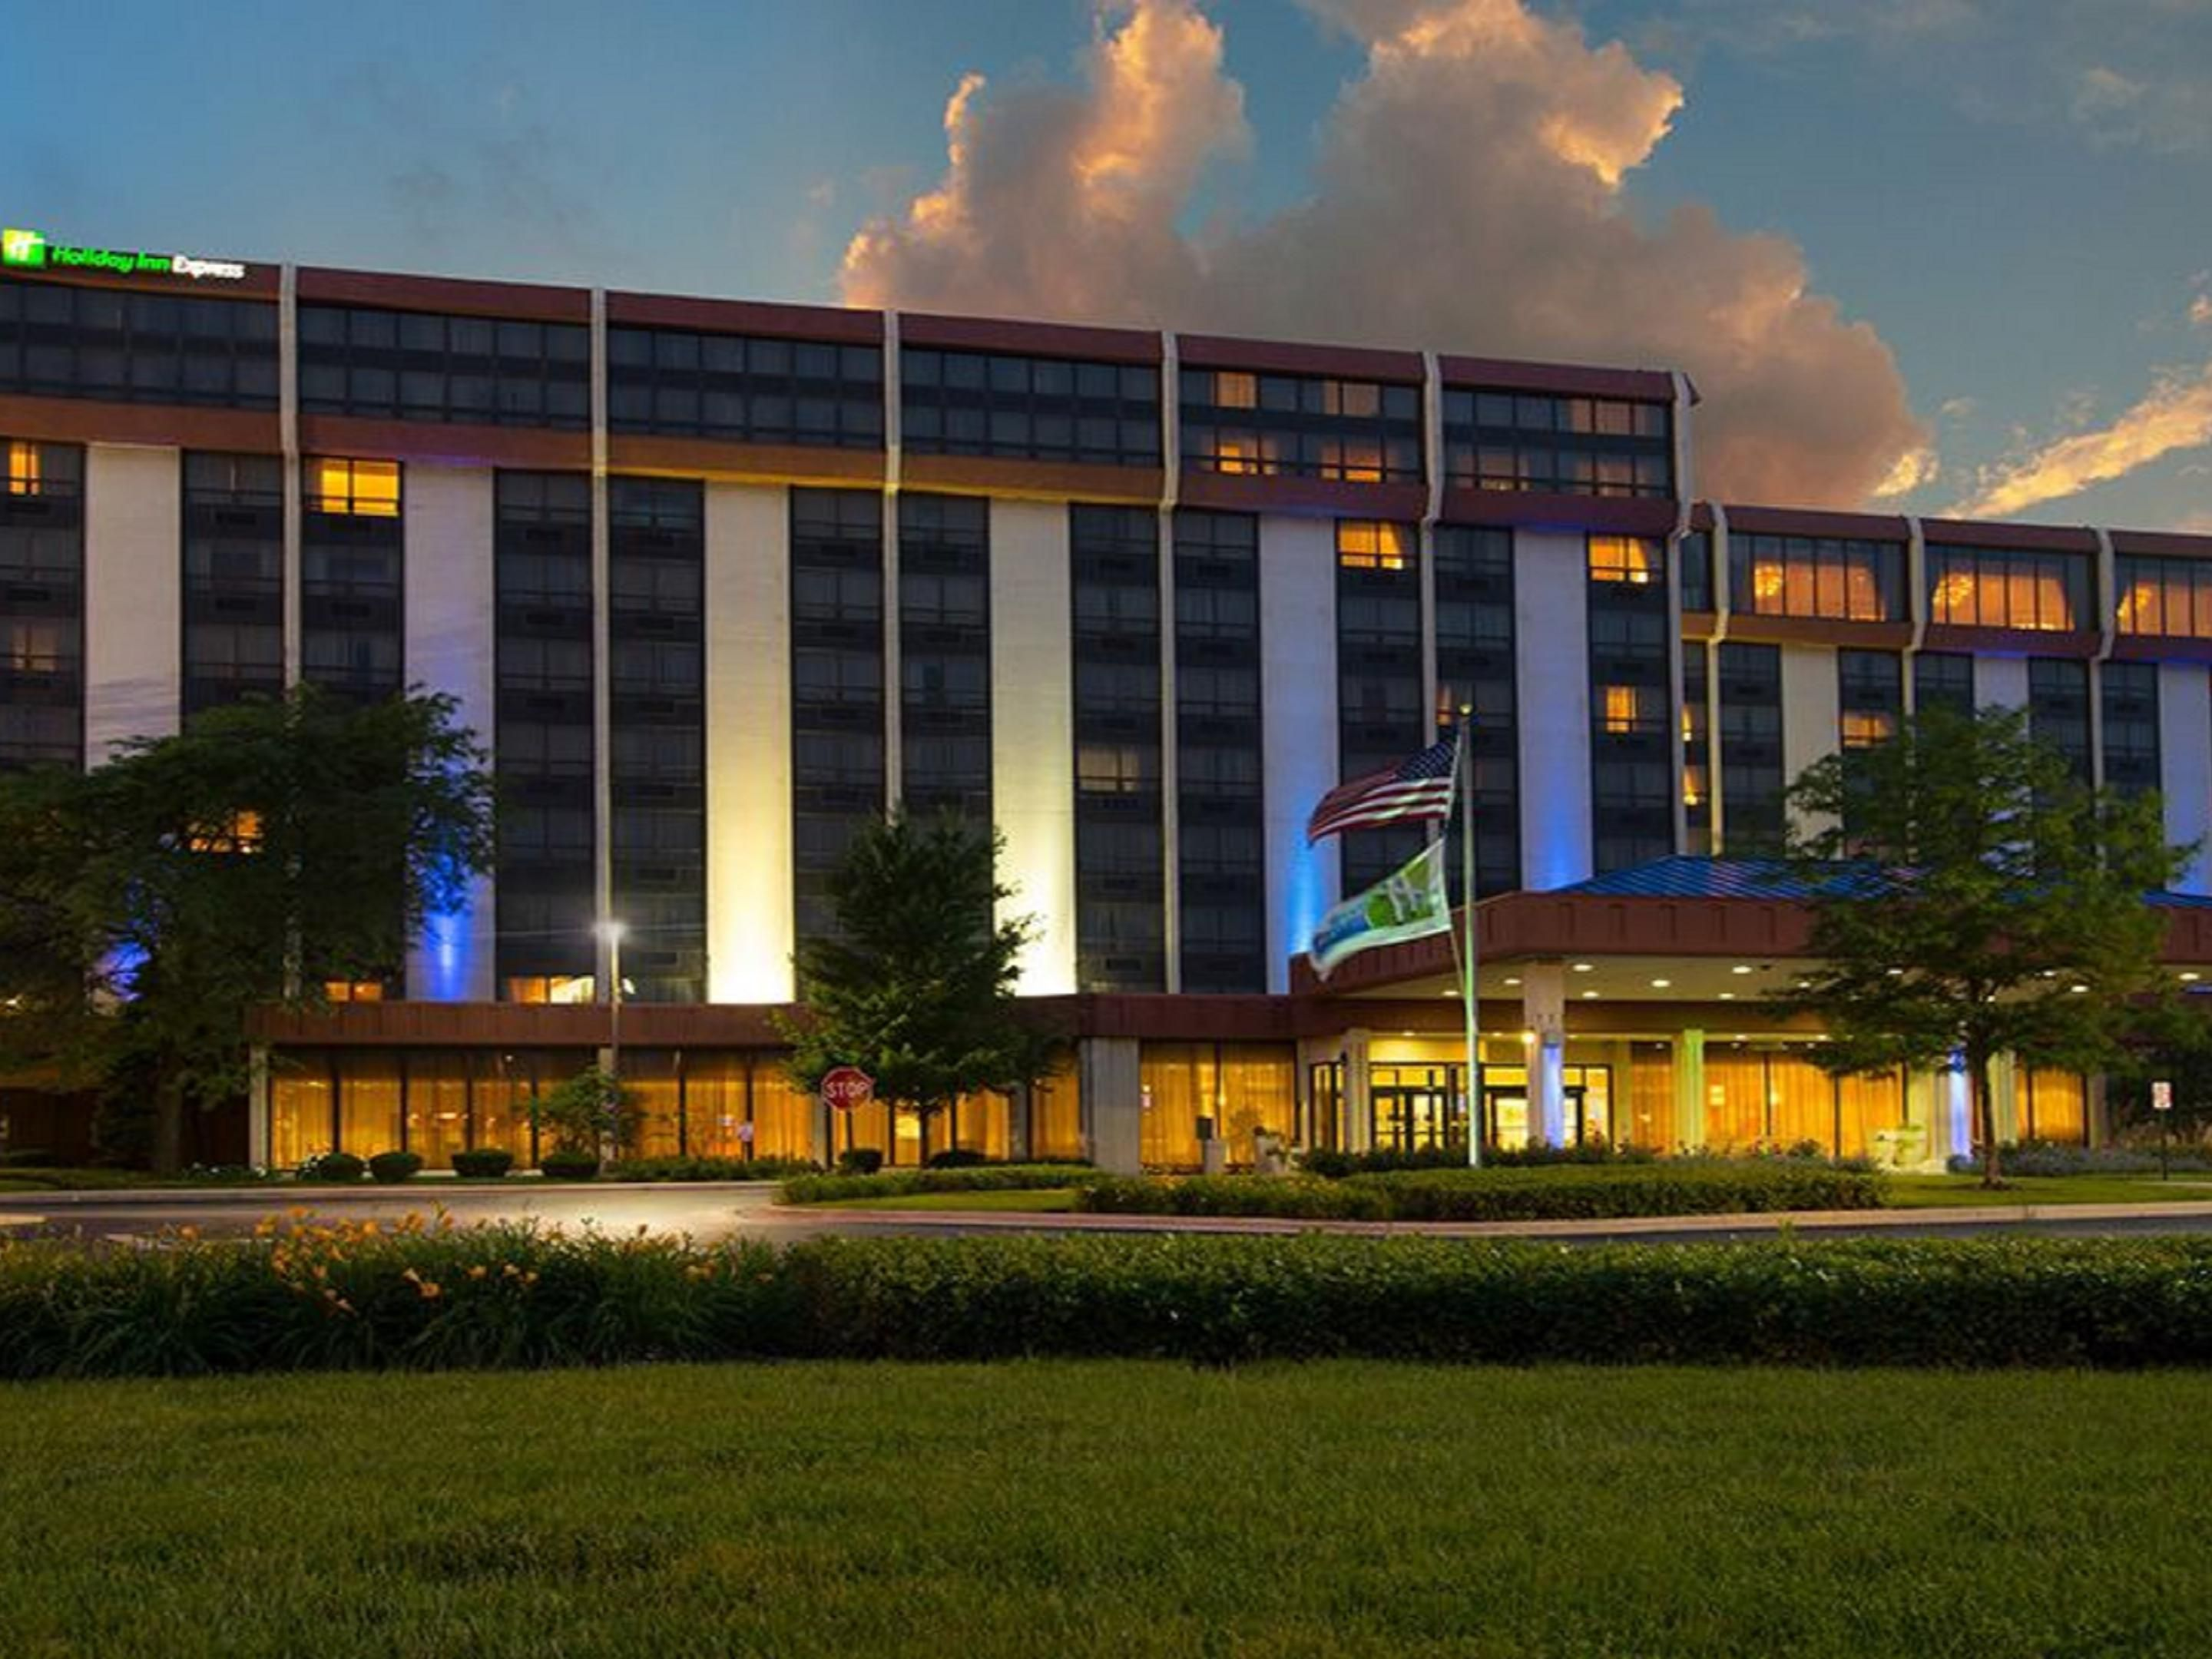 Holiday Inn Express Hotel & Suites O'Hare